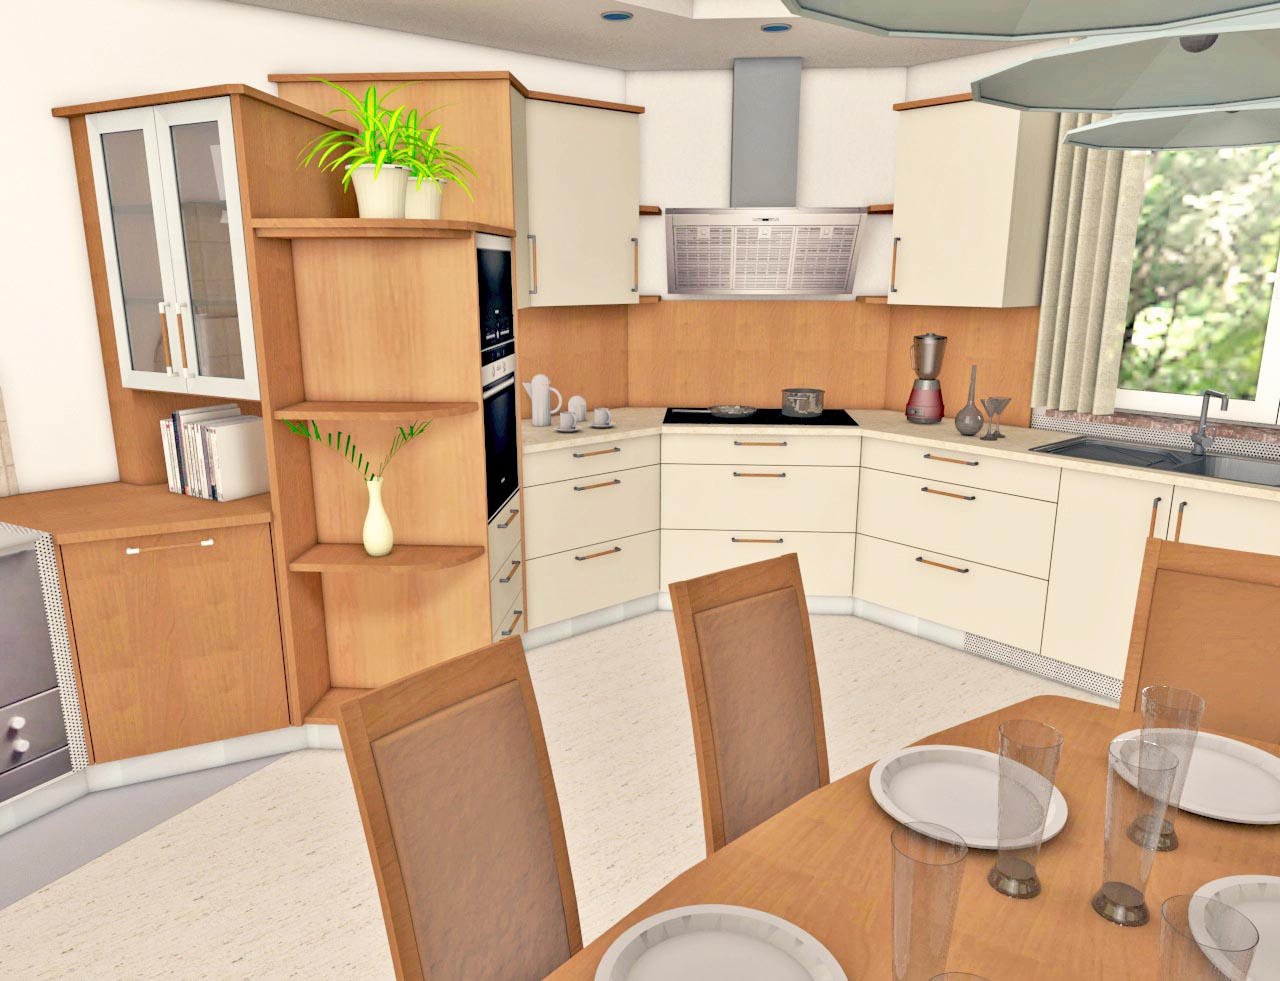 Kitchen design interiorcad for vectorworks 3d planner free